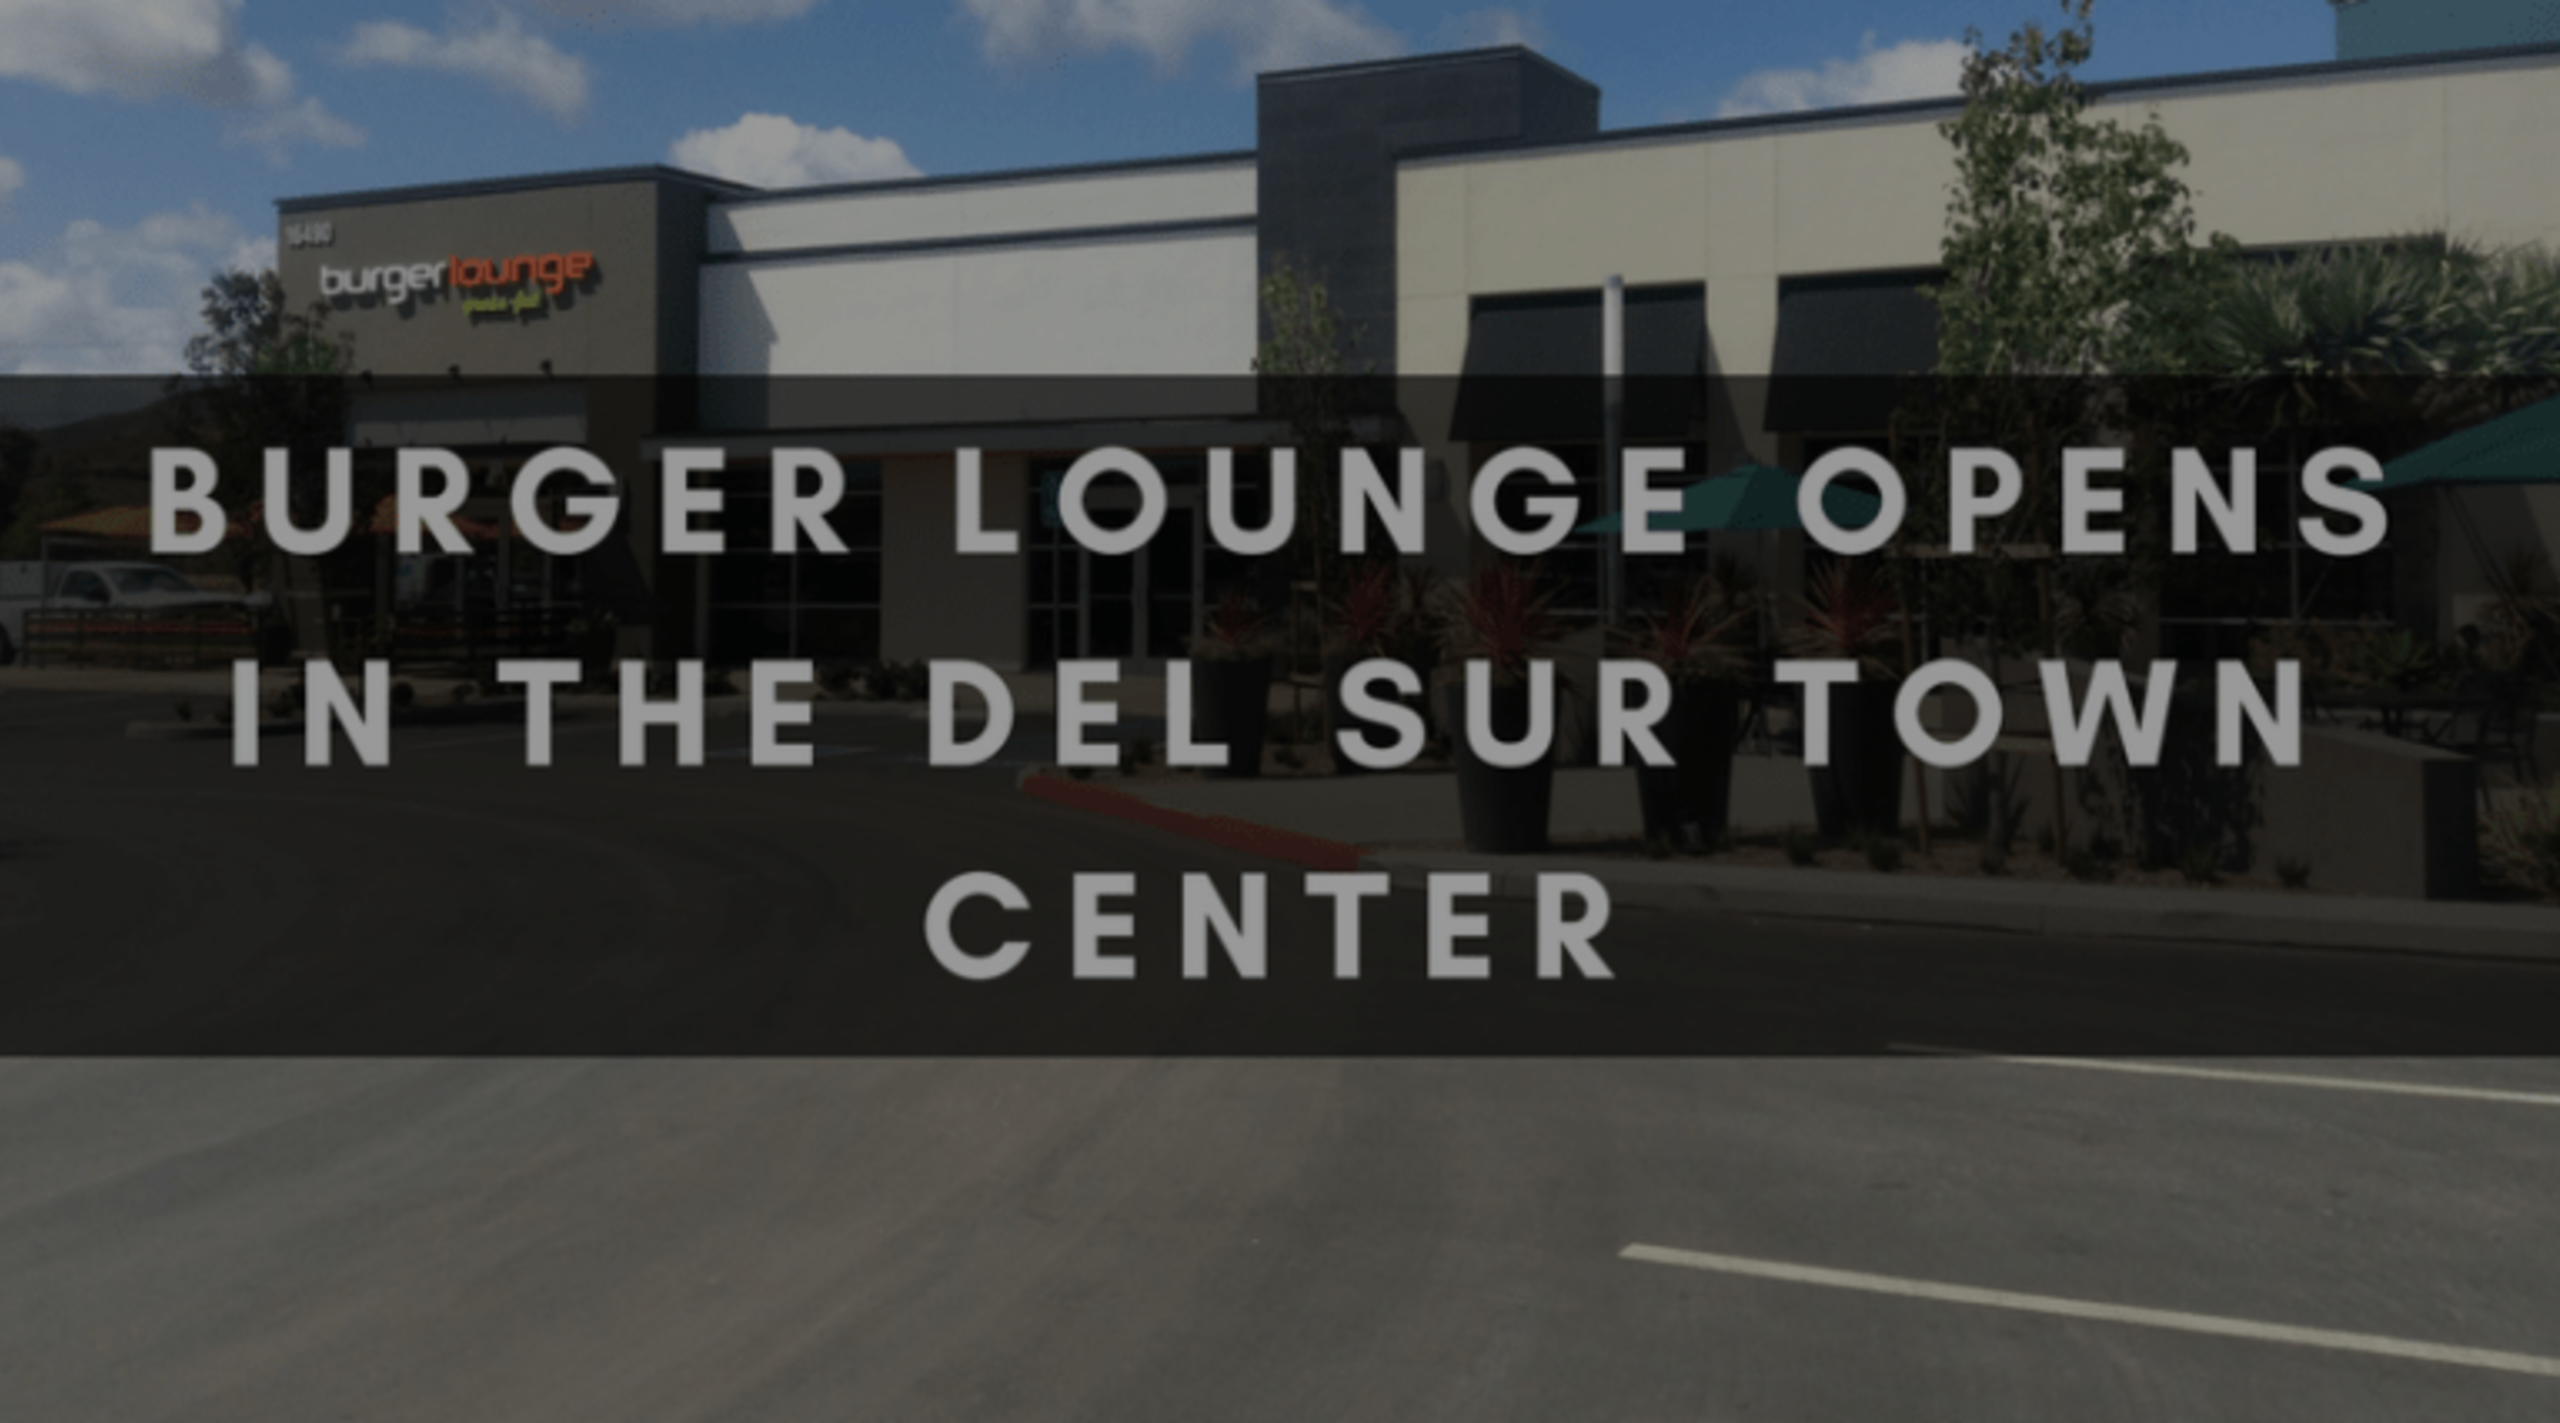 BURGER LOUNGE OPENS IN THE DEL SUR TOWN CENTER